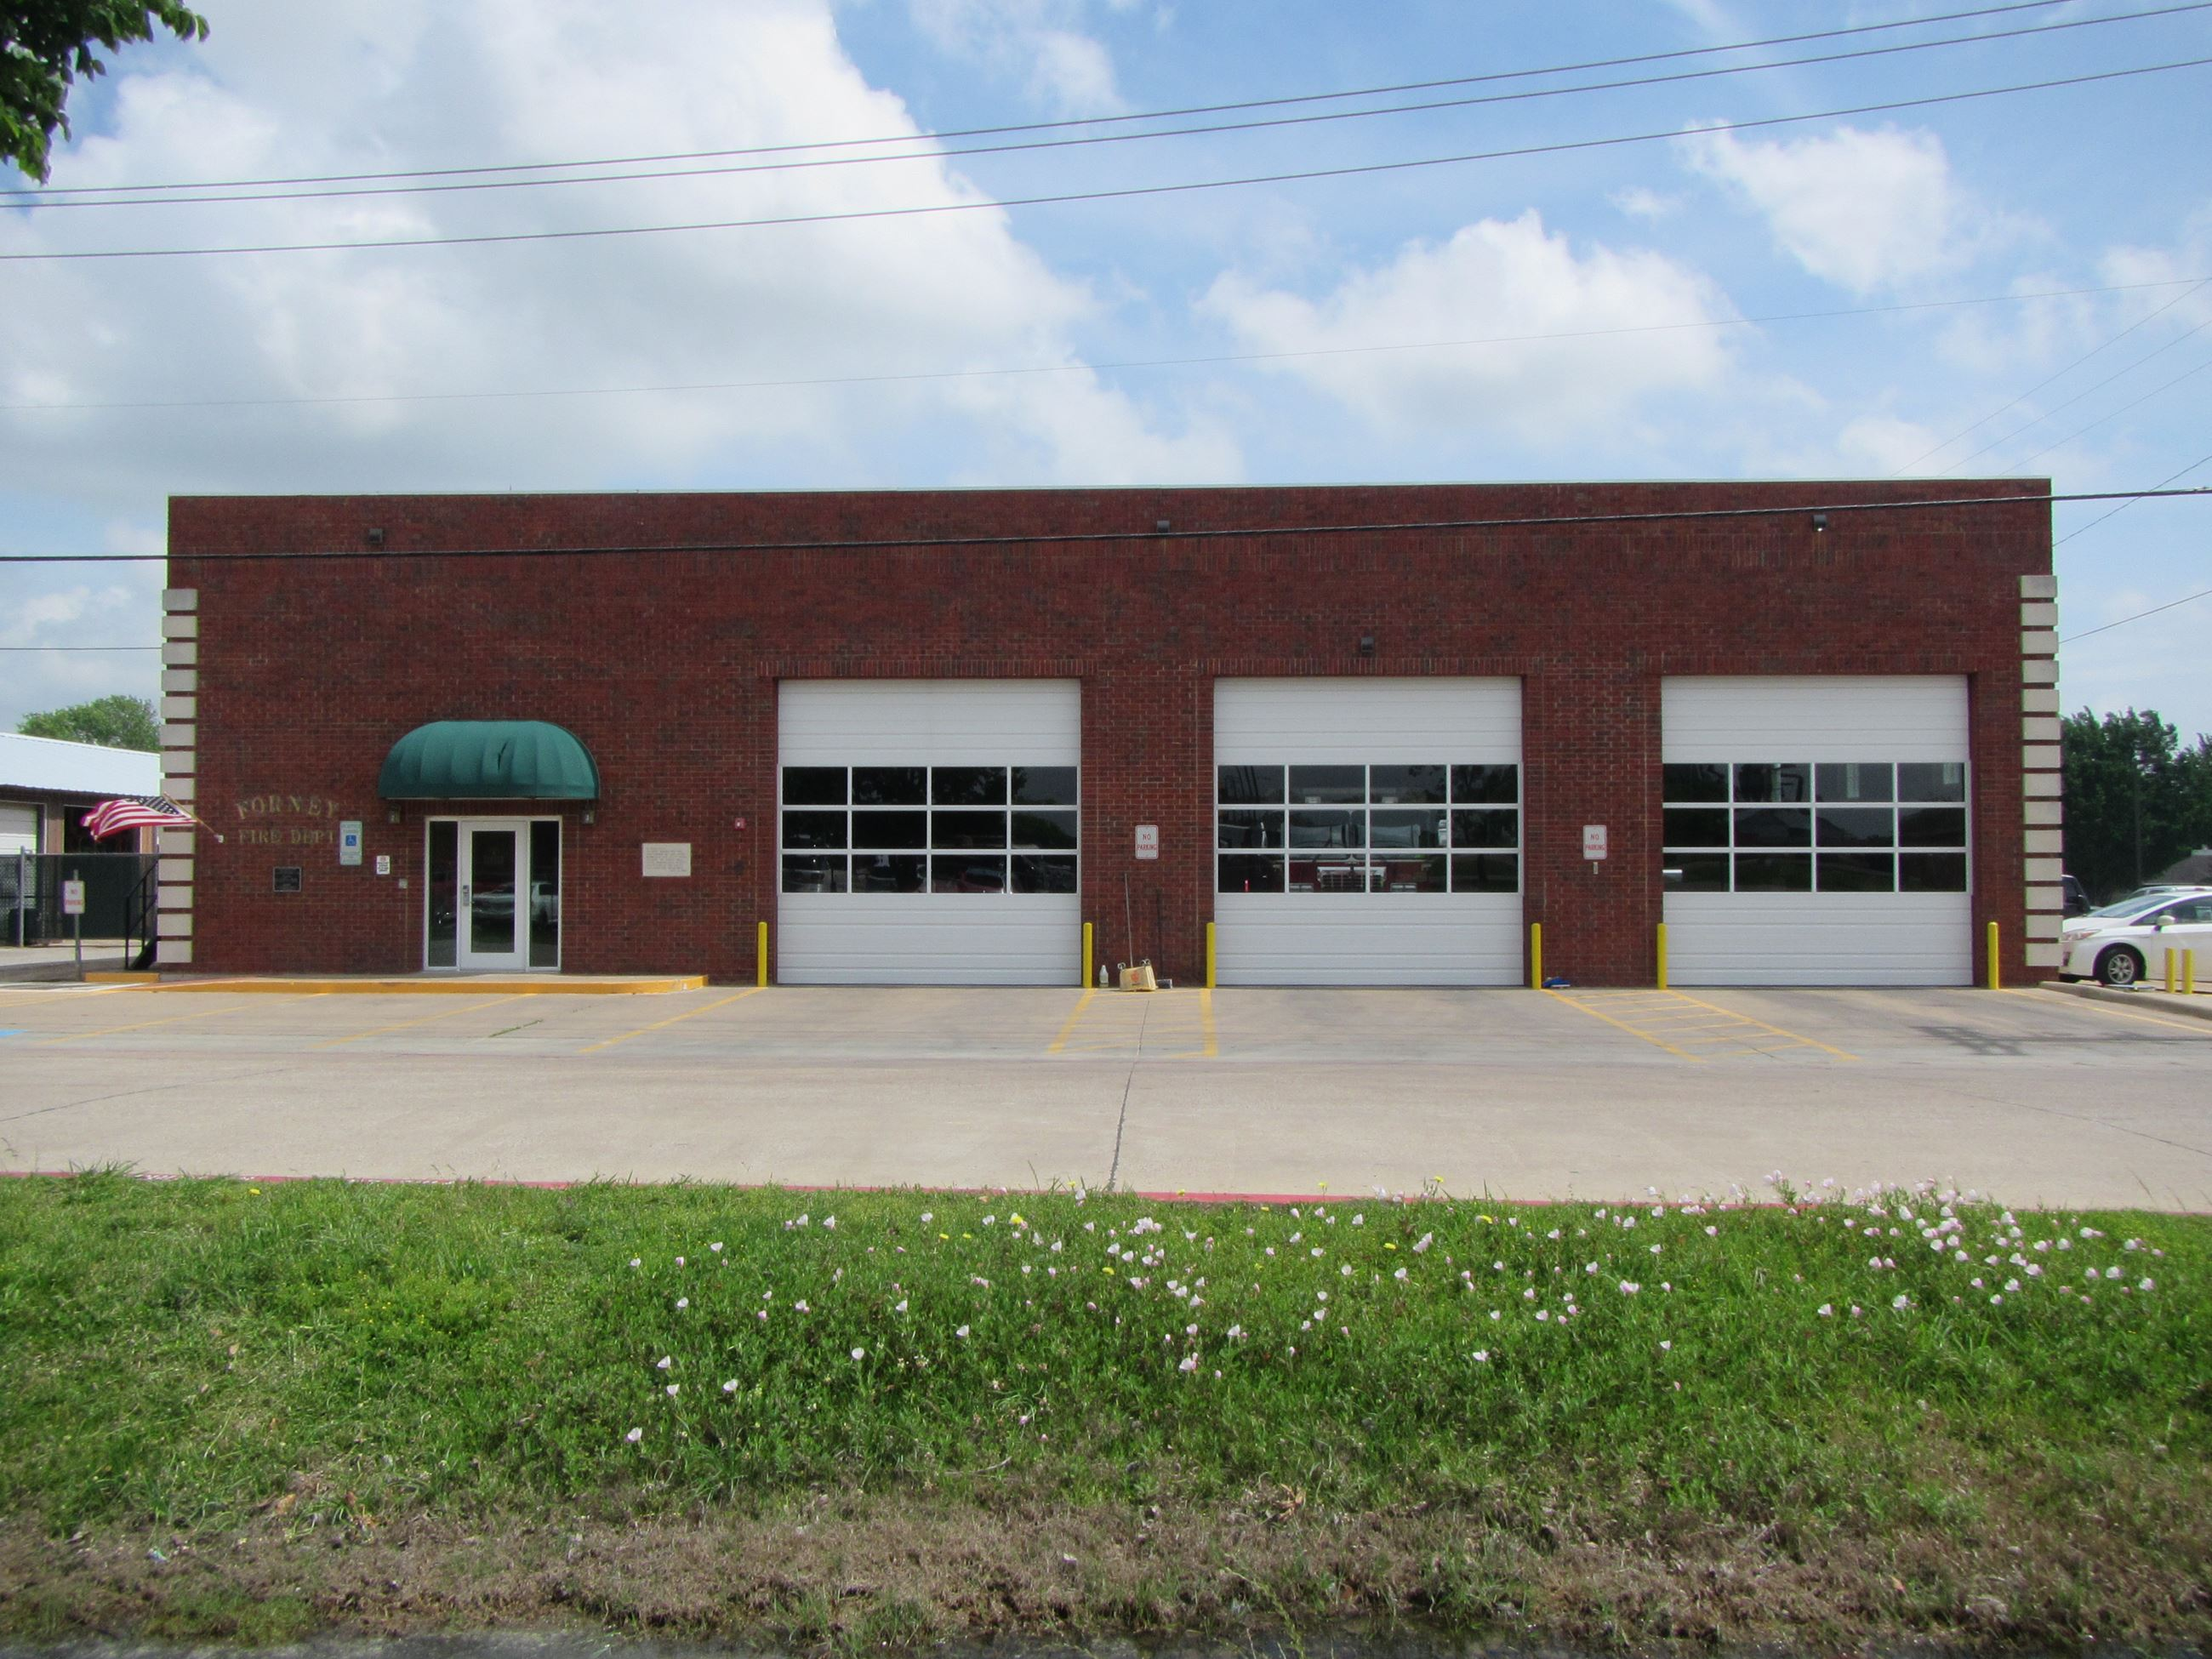 Brick Fire Station with Three Large Garage Doors